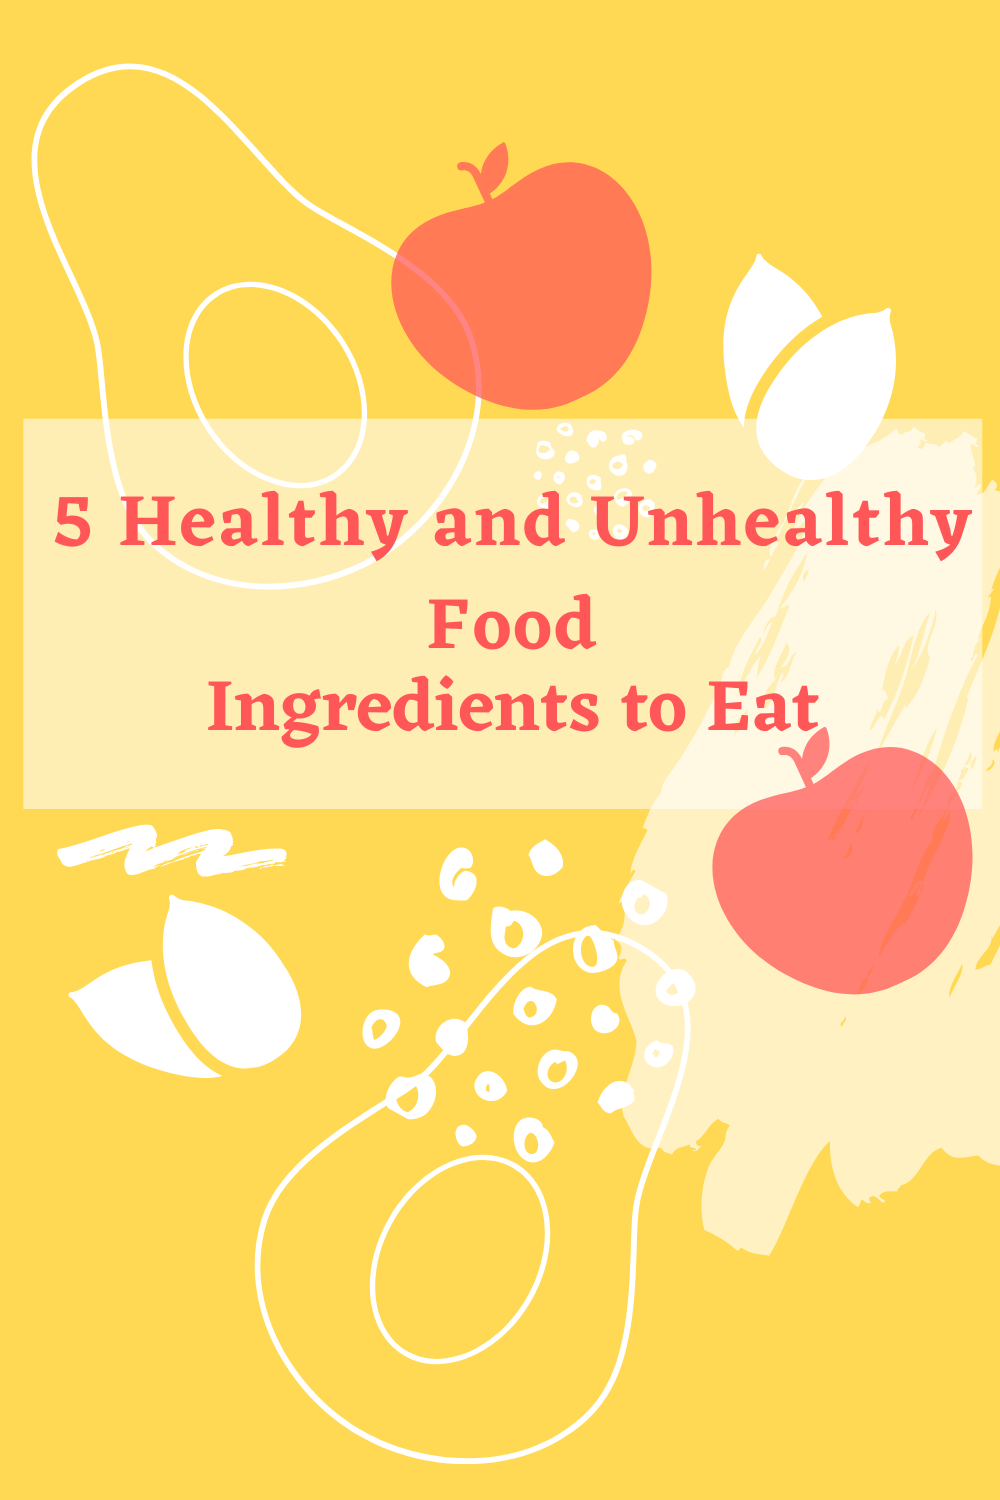 Five Healthy and Unhealthy Food Ingredients to Eat